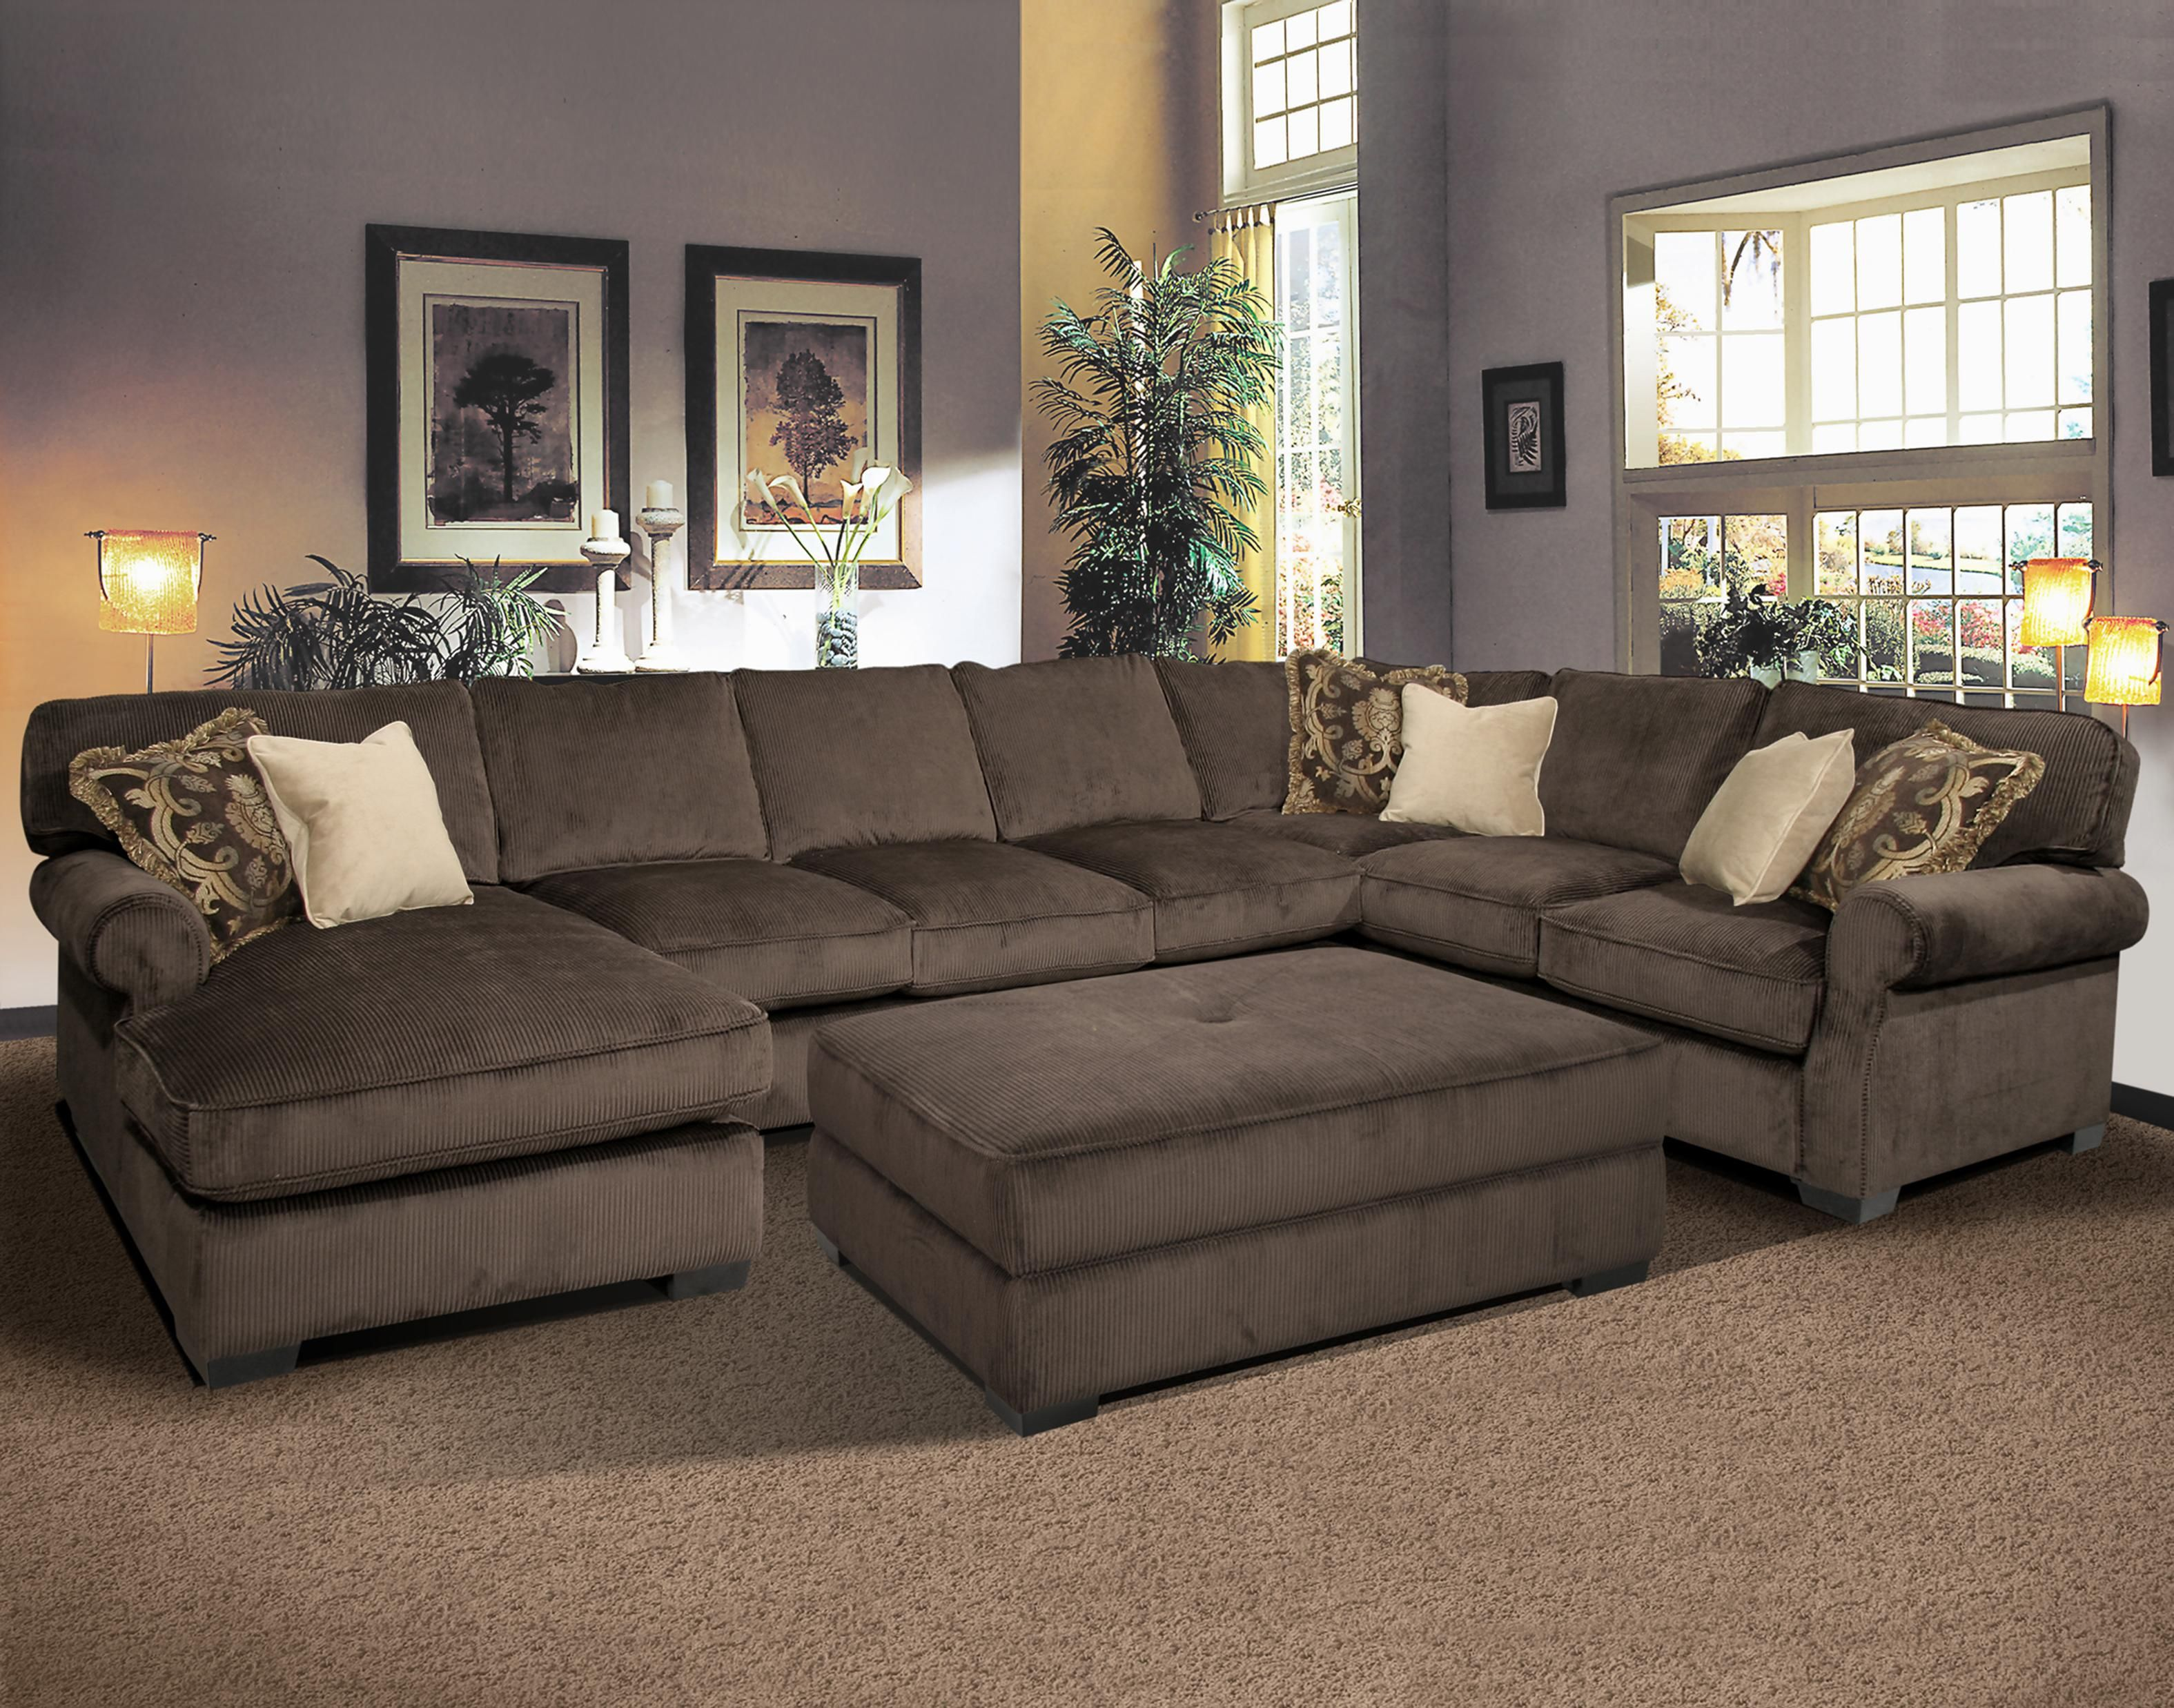 Oversized Couch Grand Island Oversized Cocktail Ottoman For Sectional Sofa By